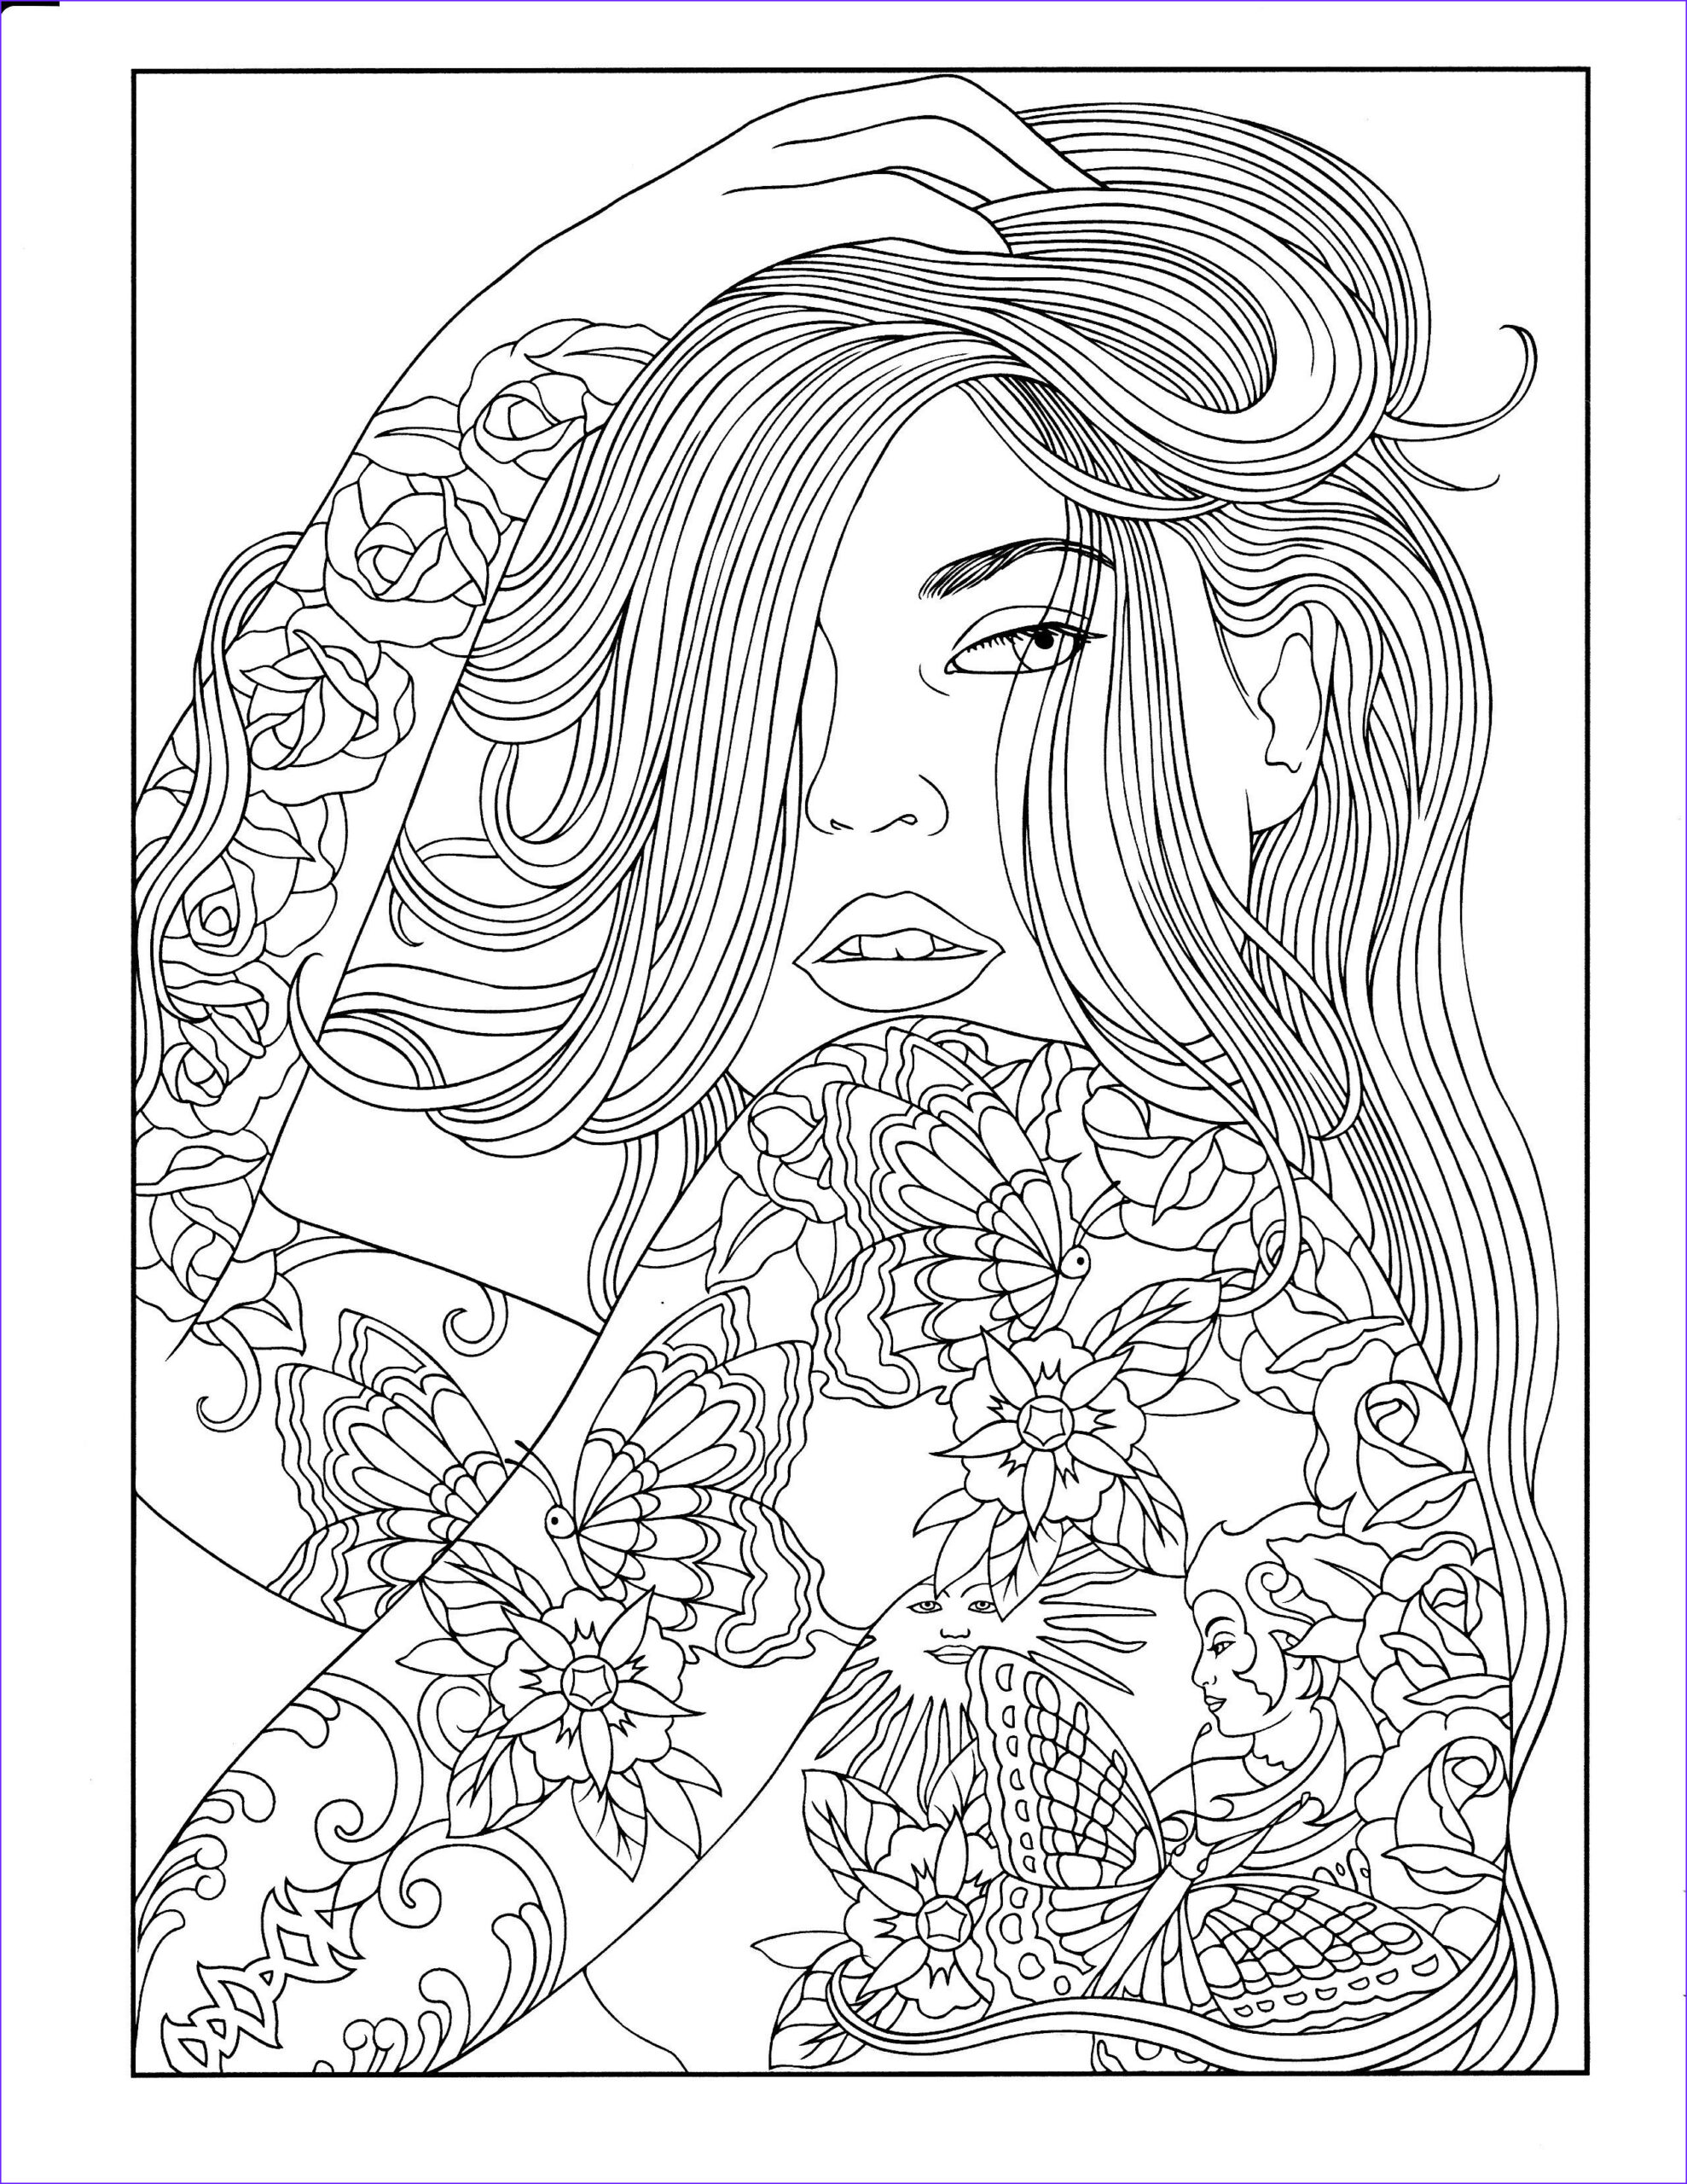 Coloring Pages People Awesome Collection Printable Coloring Page … Coloring Pages